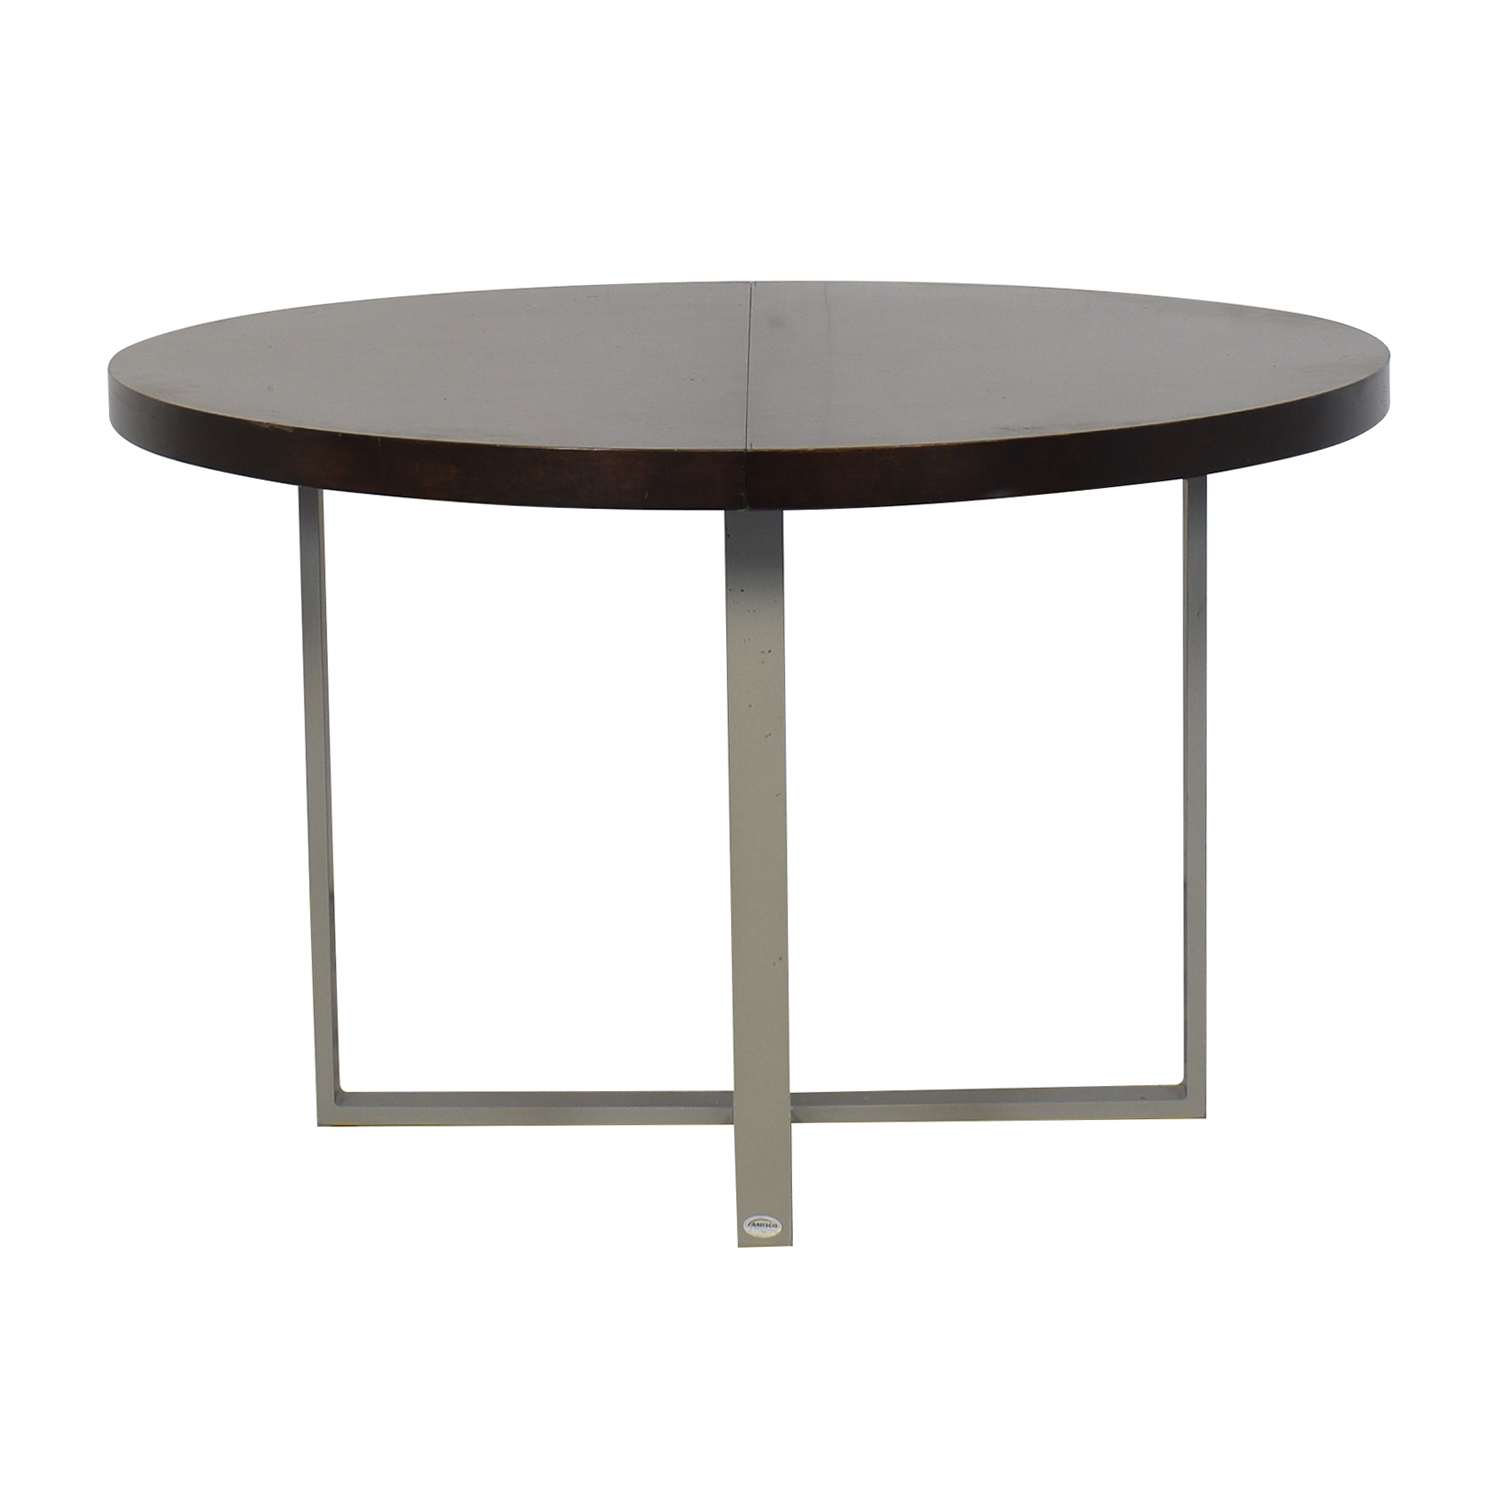 Amisco Amisco Round Extending Dining Table price